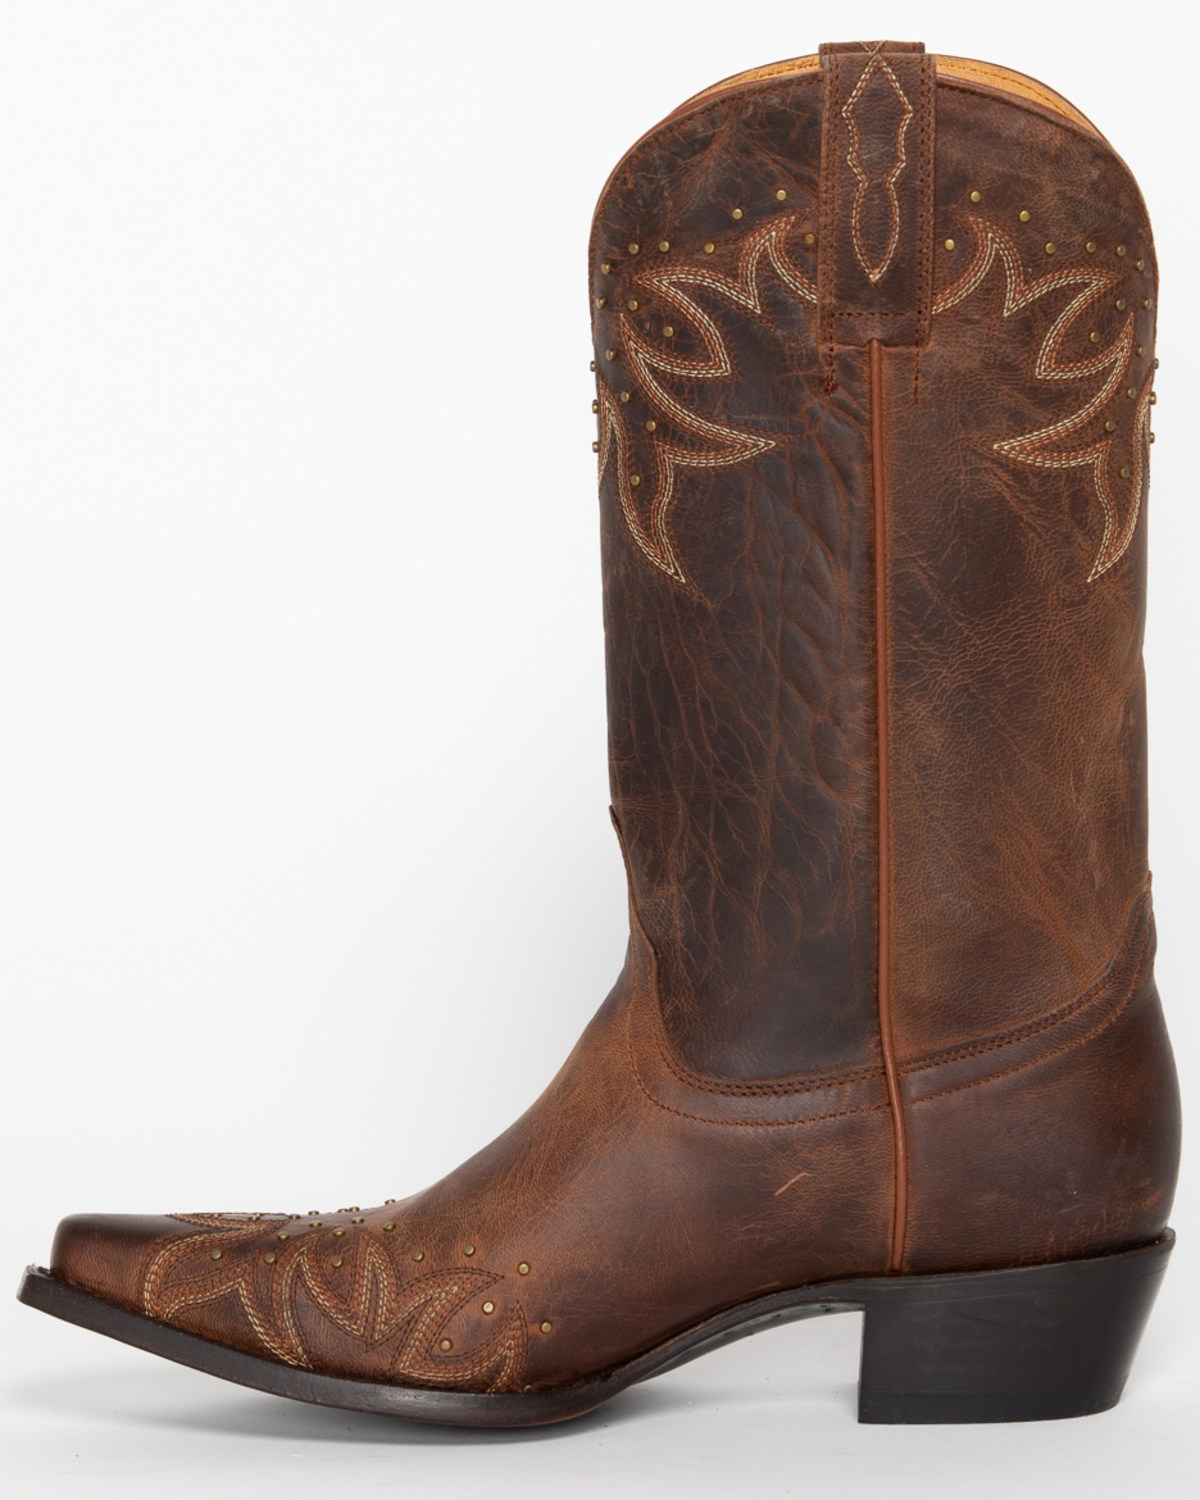 These Shyanne boots have fashionable good looks with classic comfort. The full grain leather and classic western stitching give you quality and style that can go anywhere. The comfort leather lining and insole keep you wrapped in comfort while the steel shank provides the support you need for all day wear.